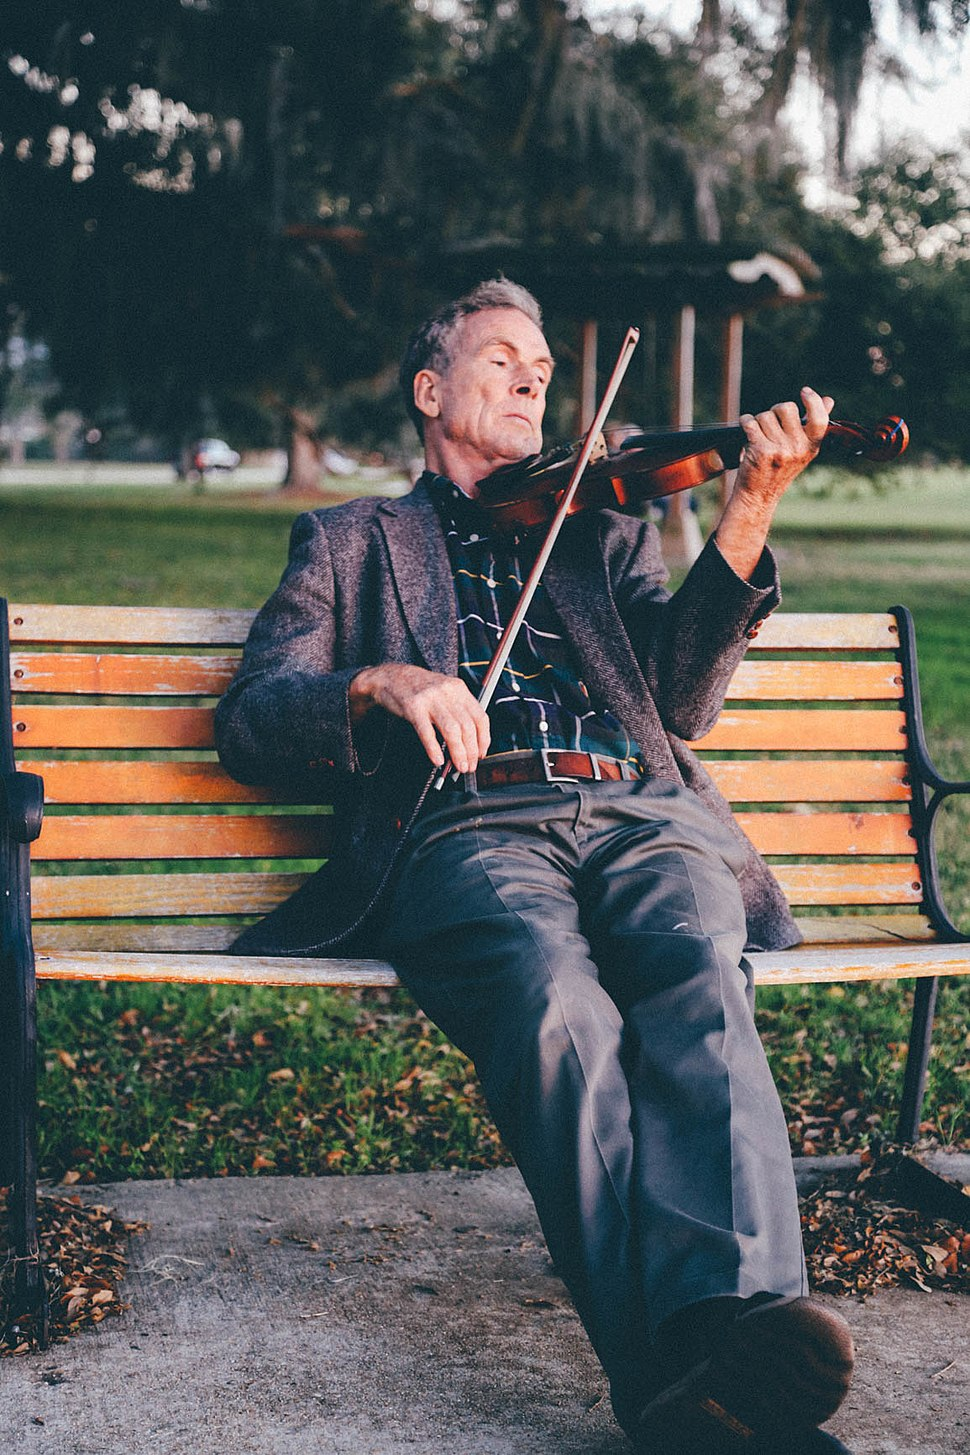 Man Playing Violin on Bench at Park